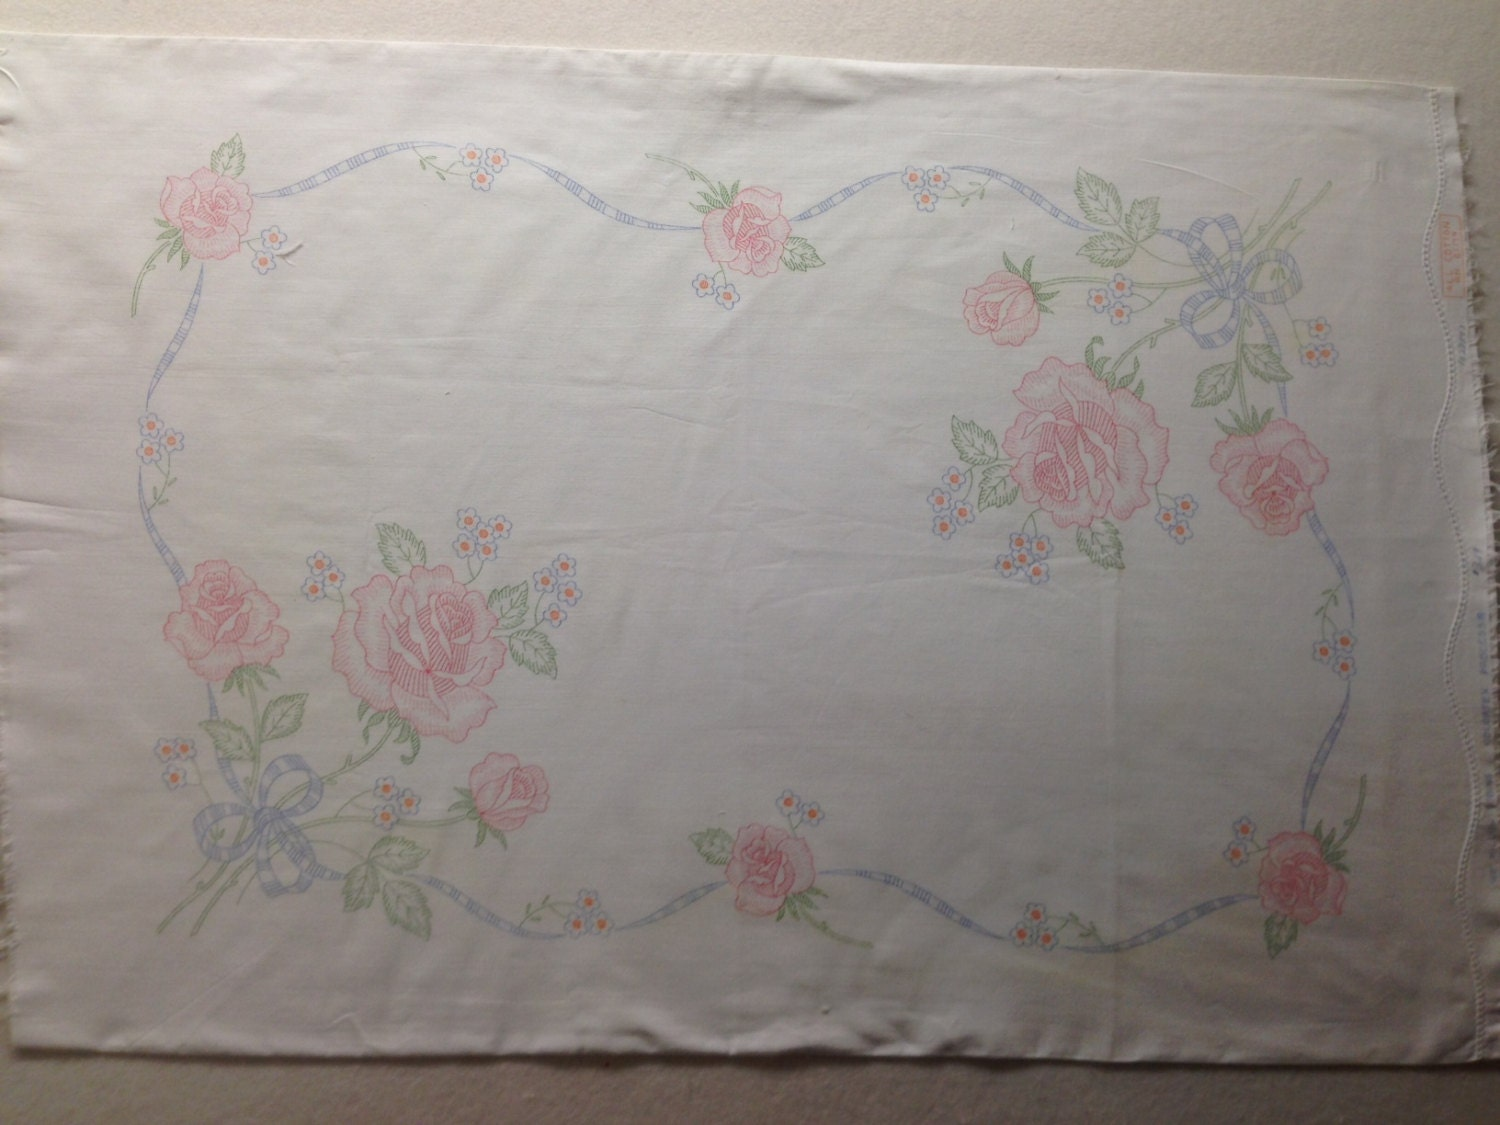 Pillowcase stamped for embroidery vintage